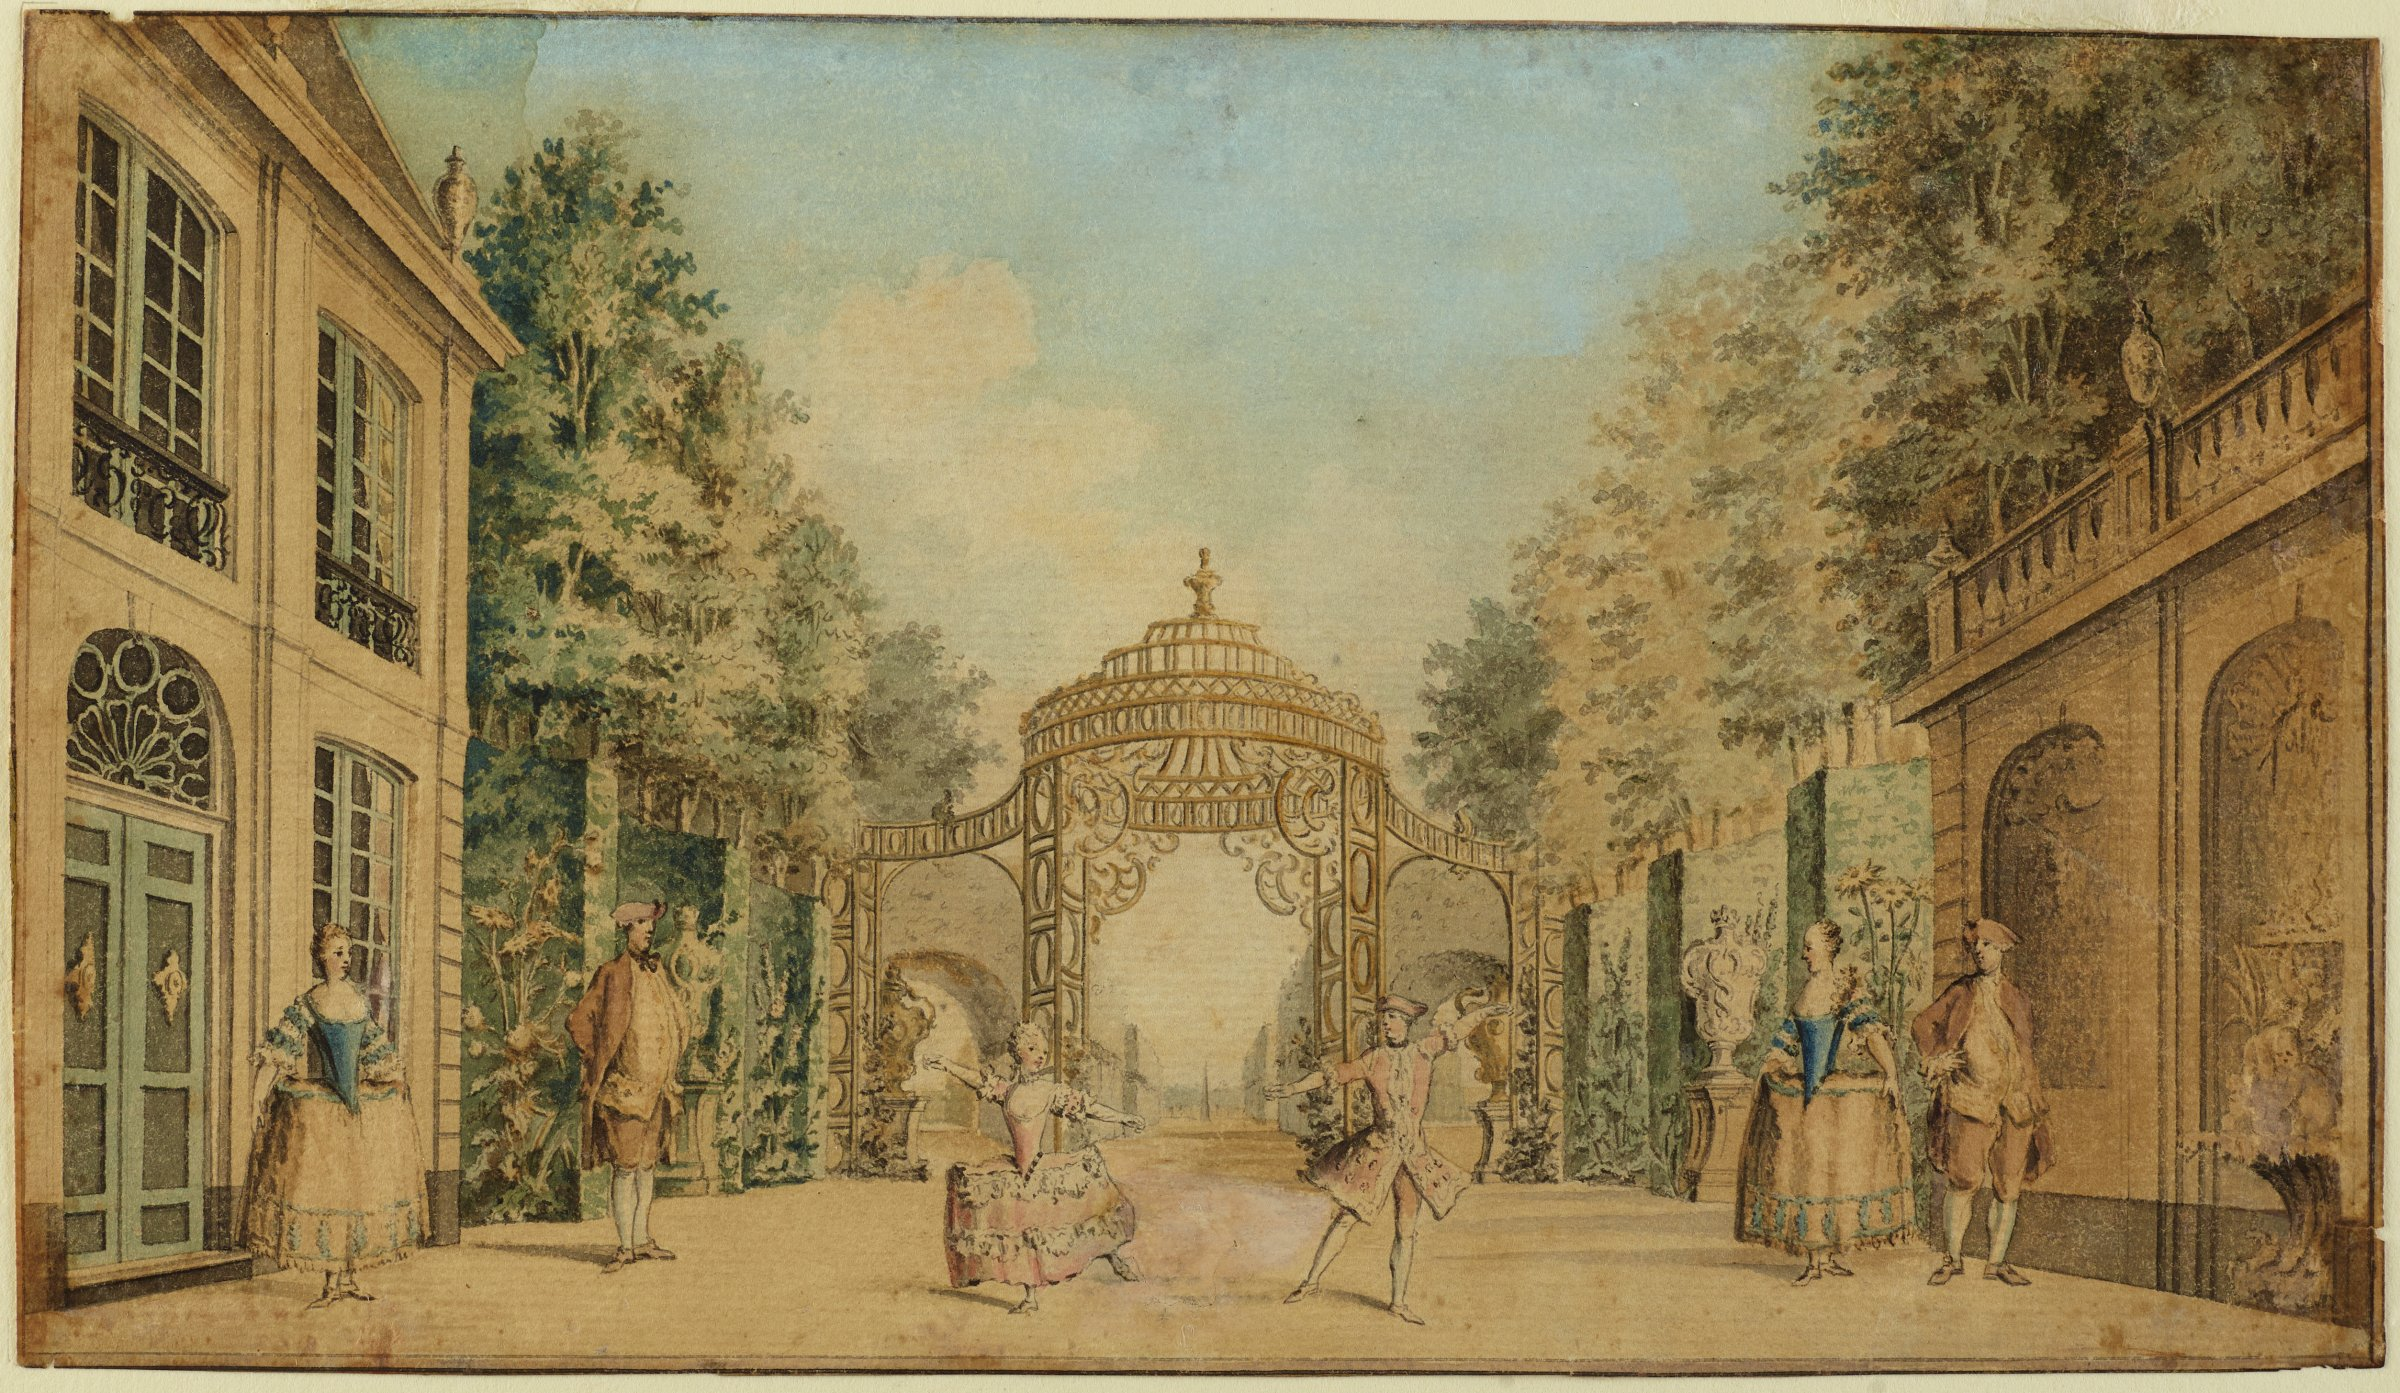 On a stage with a formal garden and buildings, a couple is observed by four other figures while performing a dance in the center.